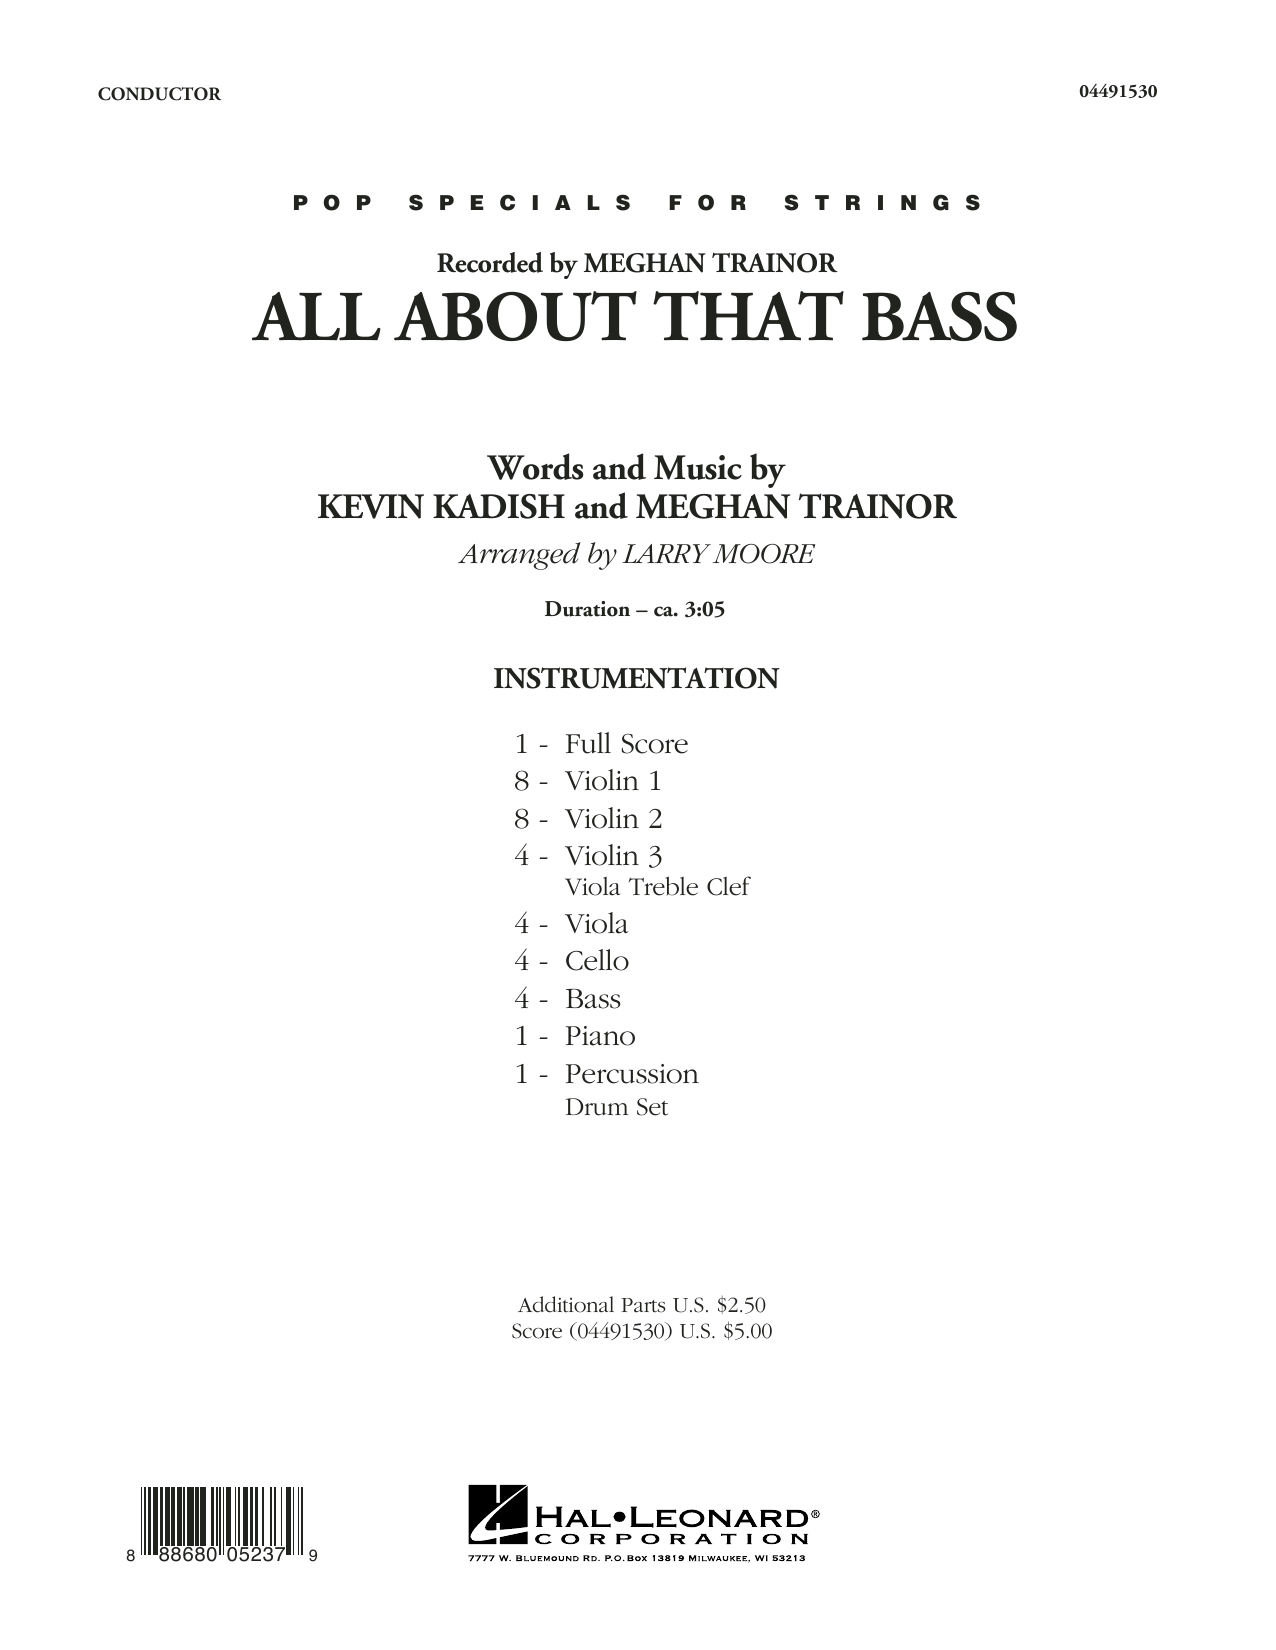 All About That Bass (COMPLETE) sheet music for orchestra by Larry Moore